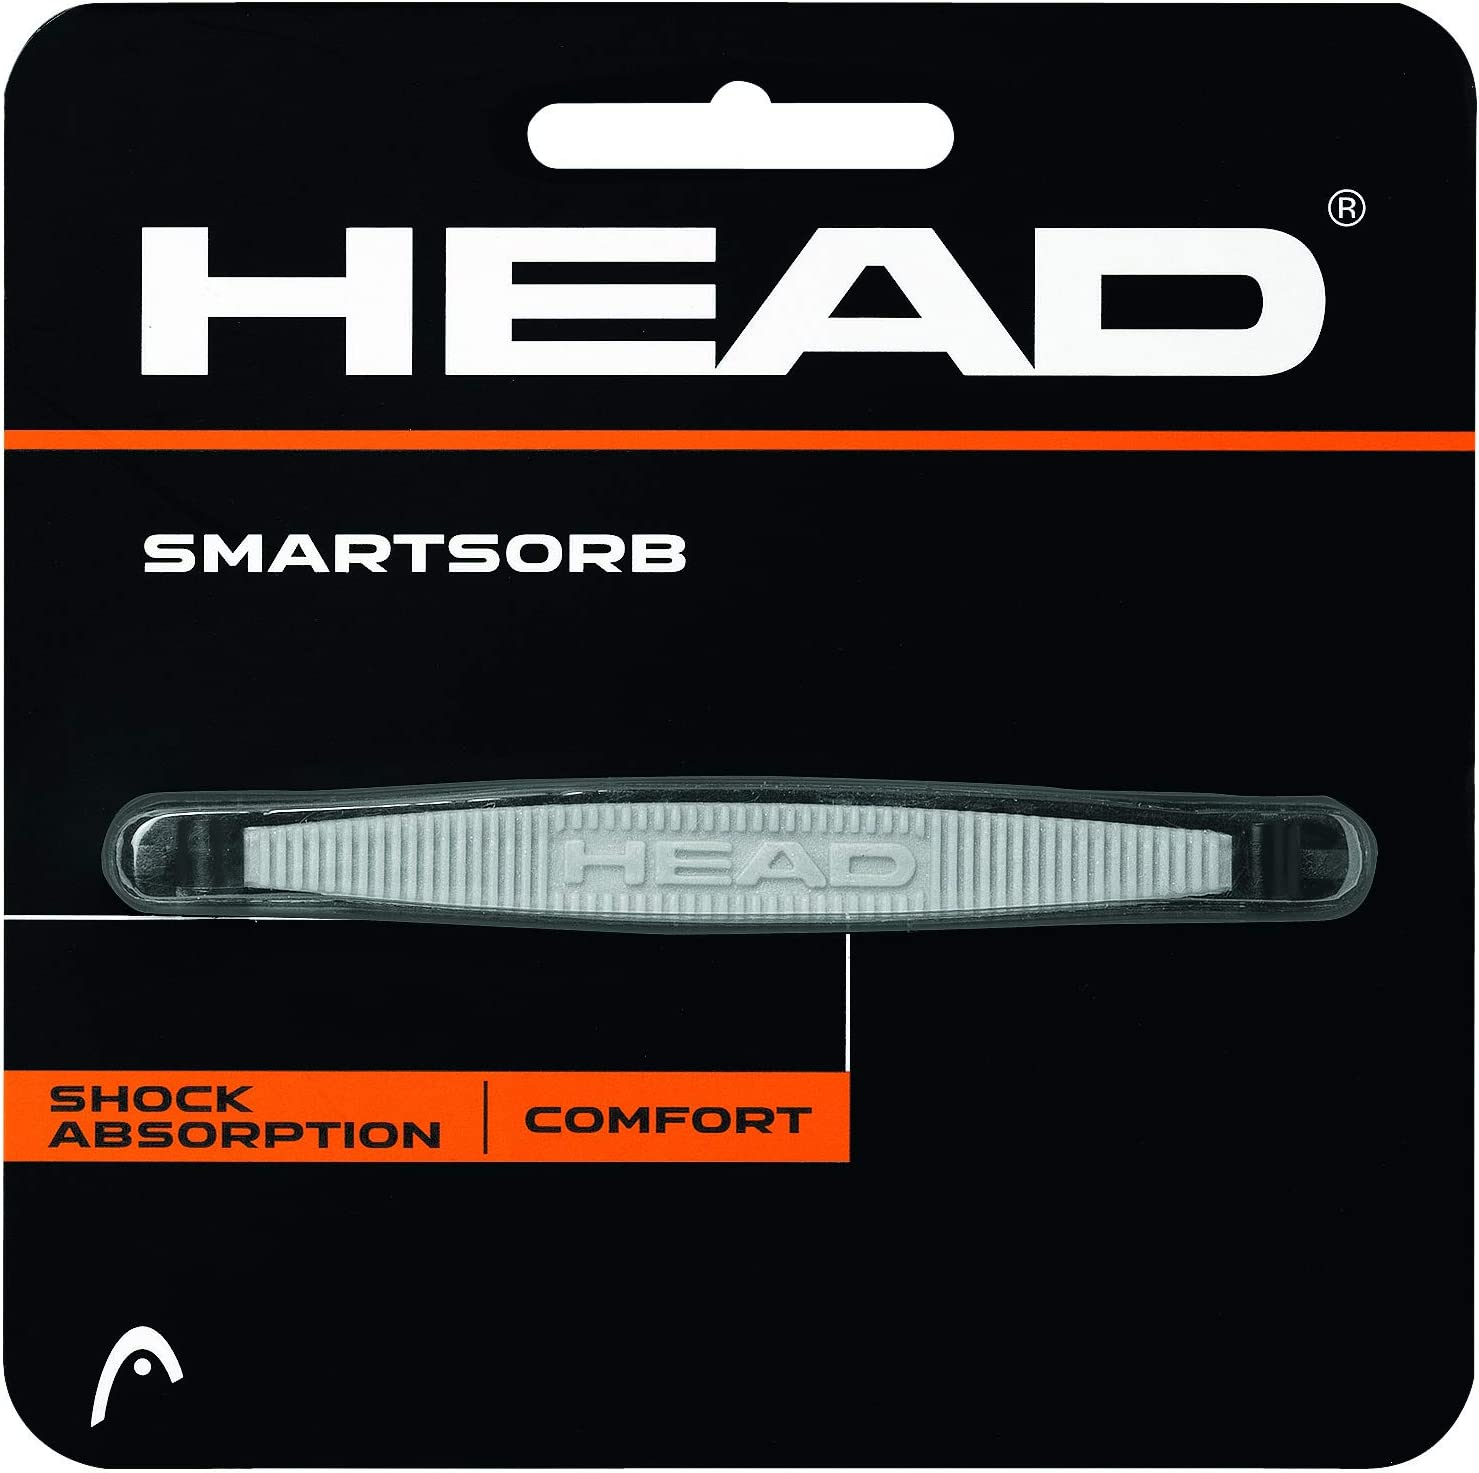 HEAD SmartSorb Tennis Racket Vibration Dampeners - Racquet Shock Absorbers : Sports & Outdoors